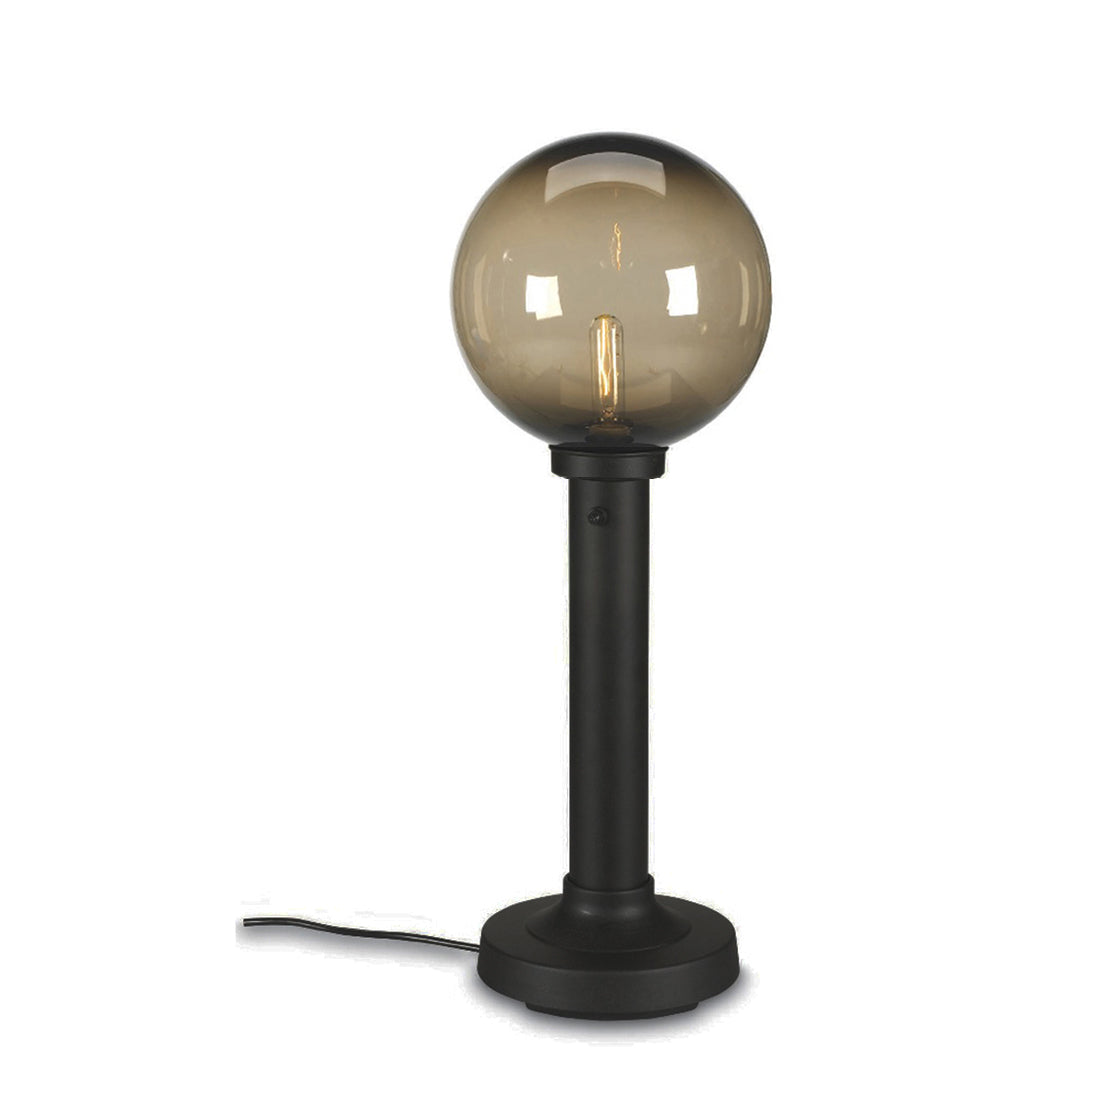 "Moonlite 35"" Table Lamp 09720 with 3"" black tube body and bronze globe"